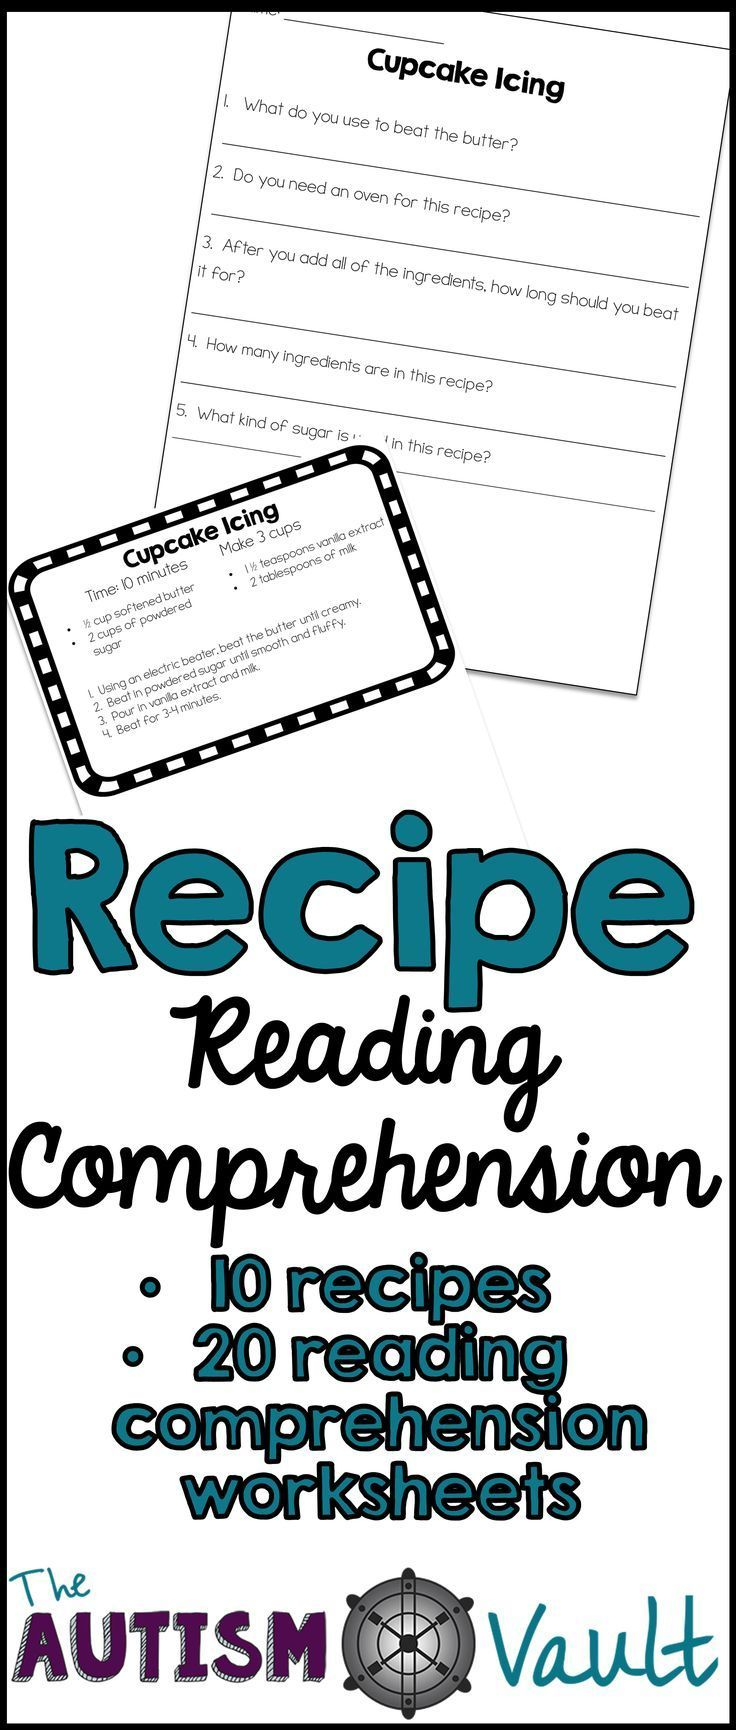 Worksheets Functional Reading Worksheets recipe reading comprehension life skills and functional literacy pratice with your special education students comes 10 recipes